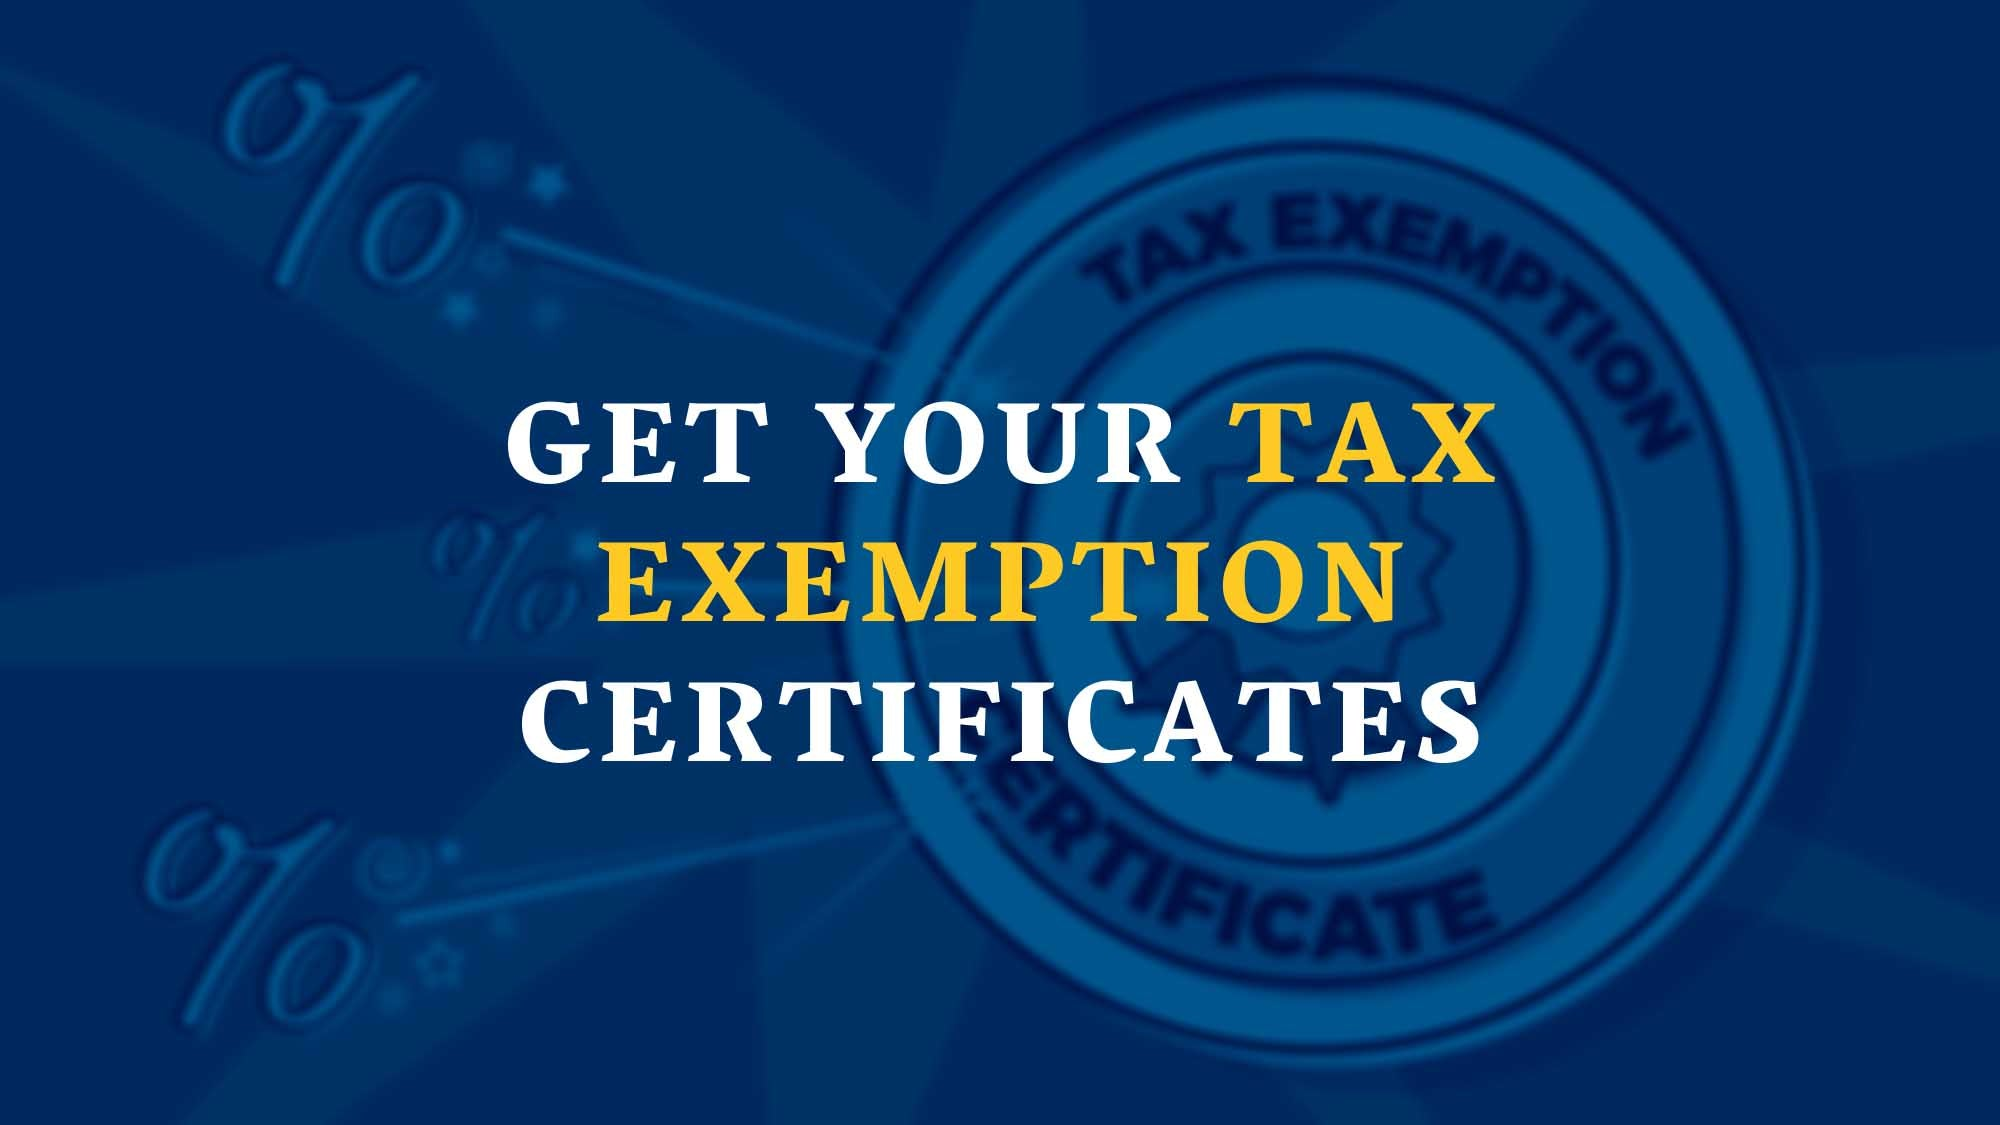 Get Your Tax Exemption Certificates - DropshipUSA